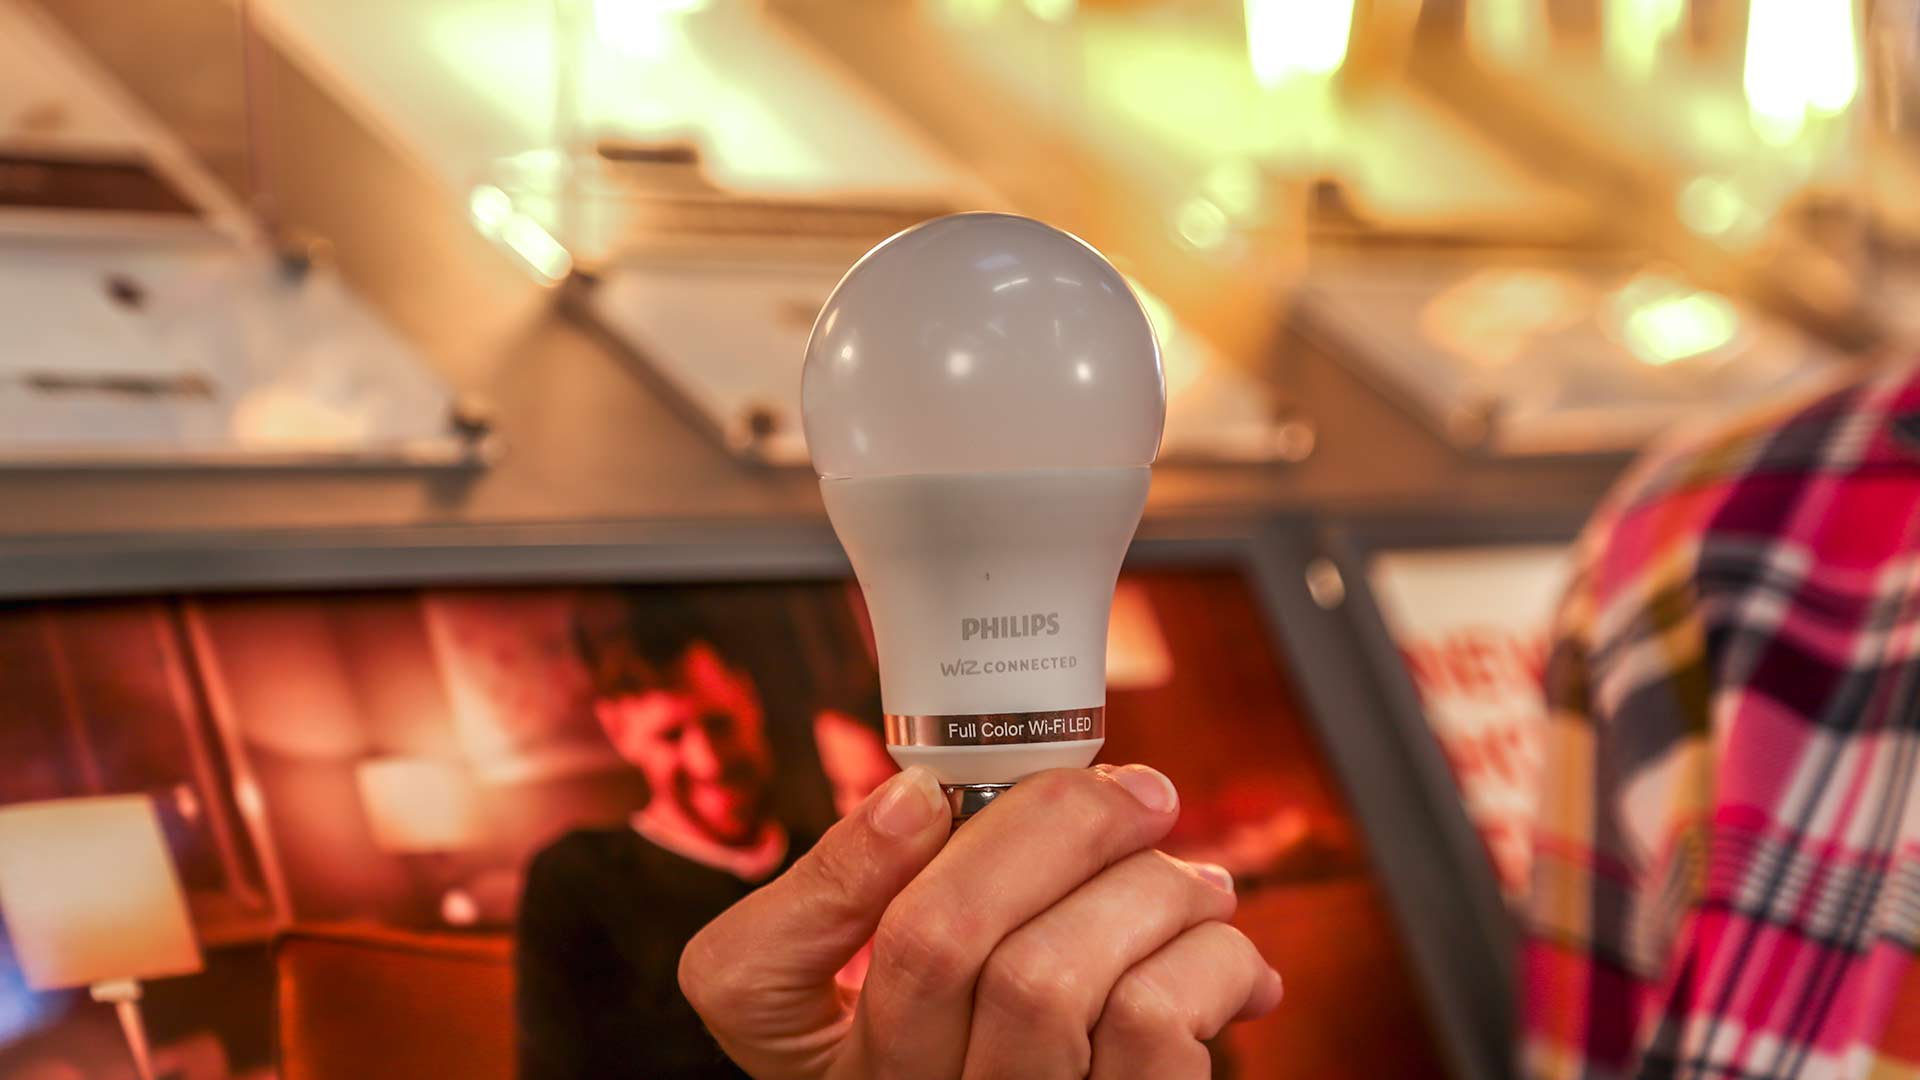 Philips' Wiz Smart Wi-Fi LED bulb